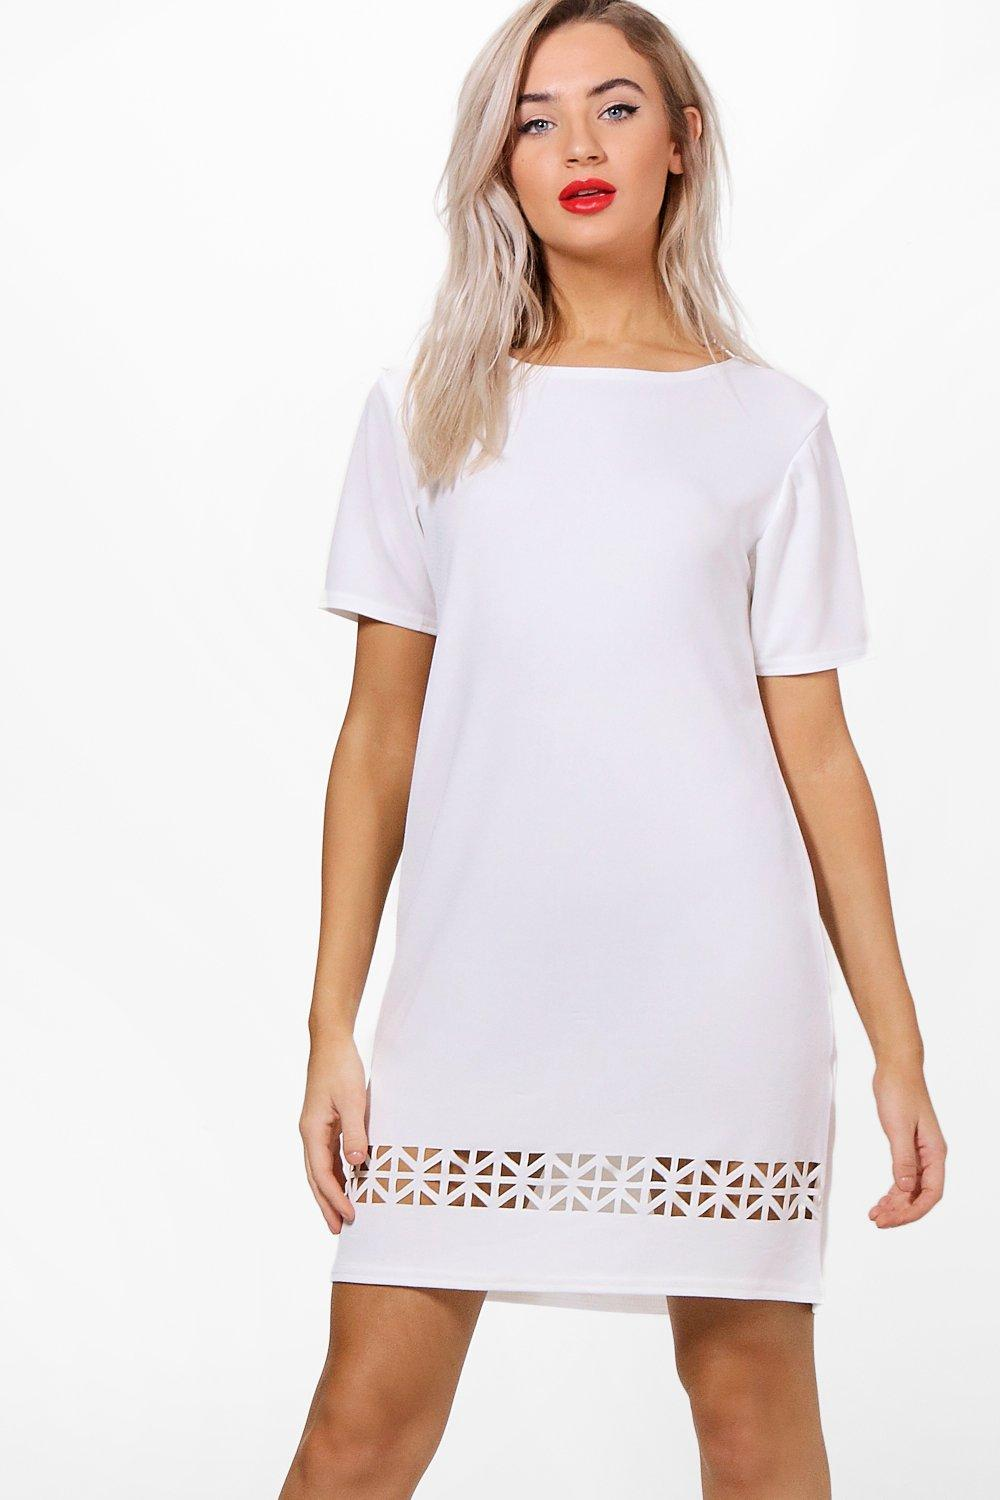 Kyle Laser Cut Shift Dress